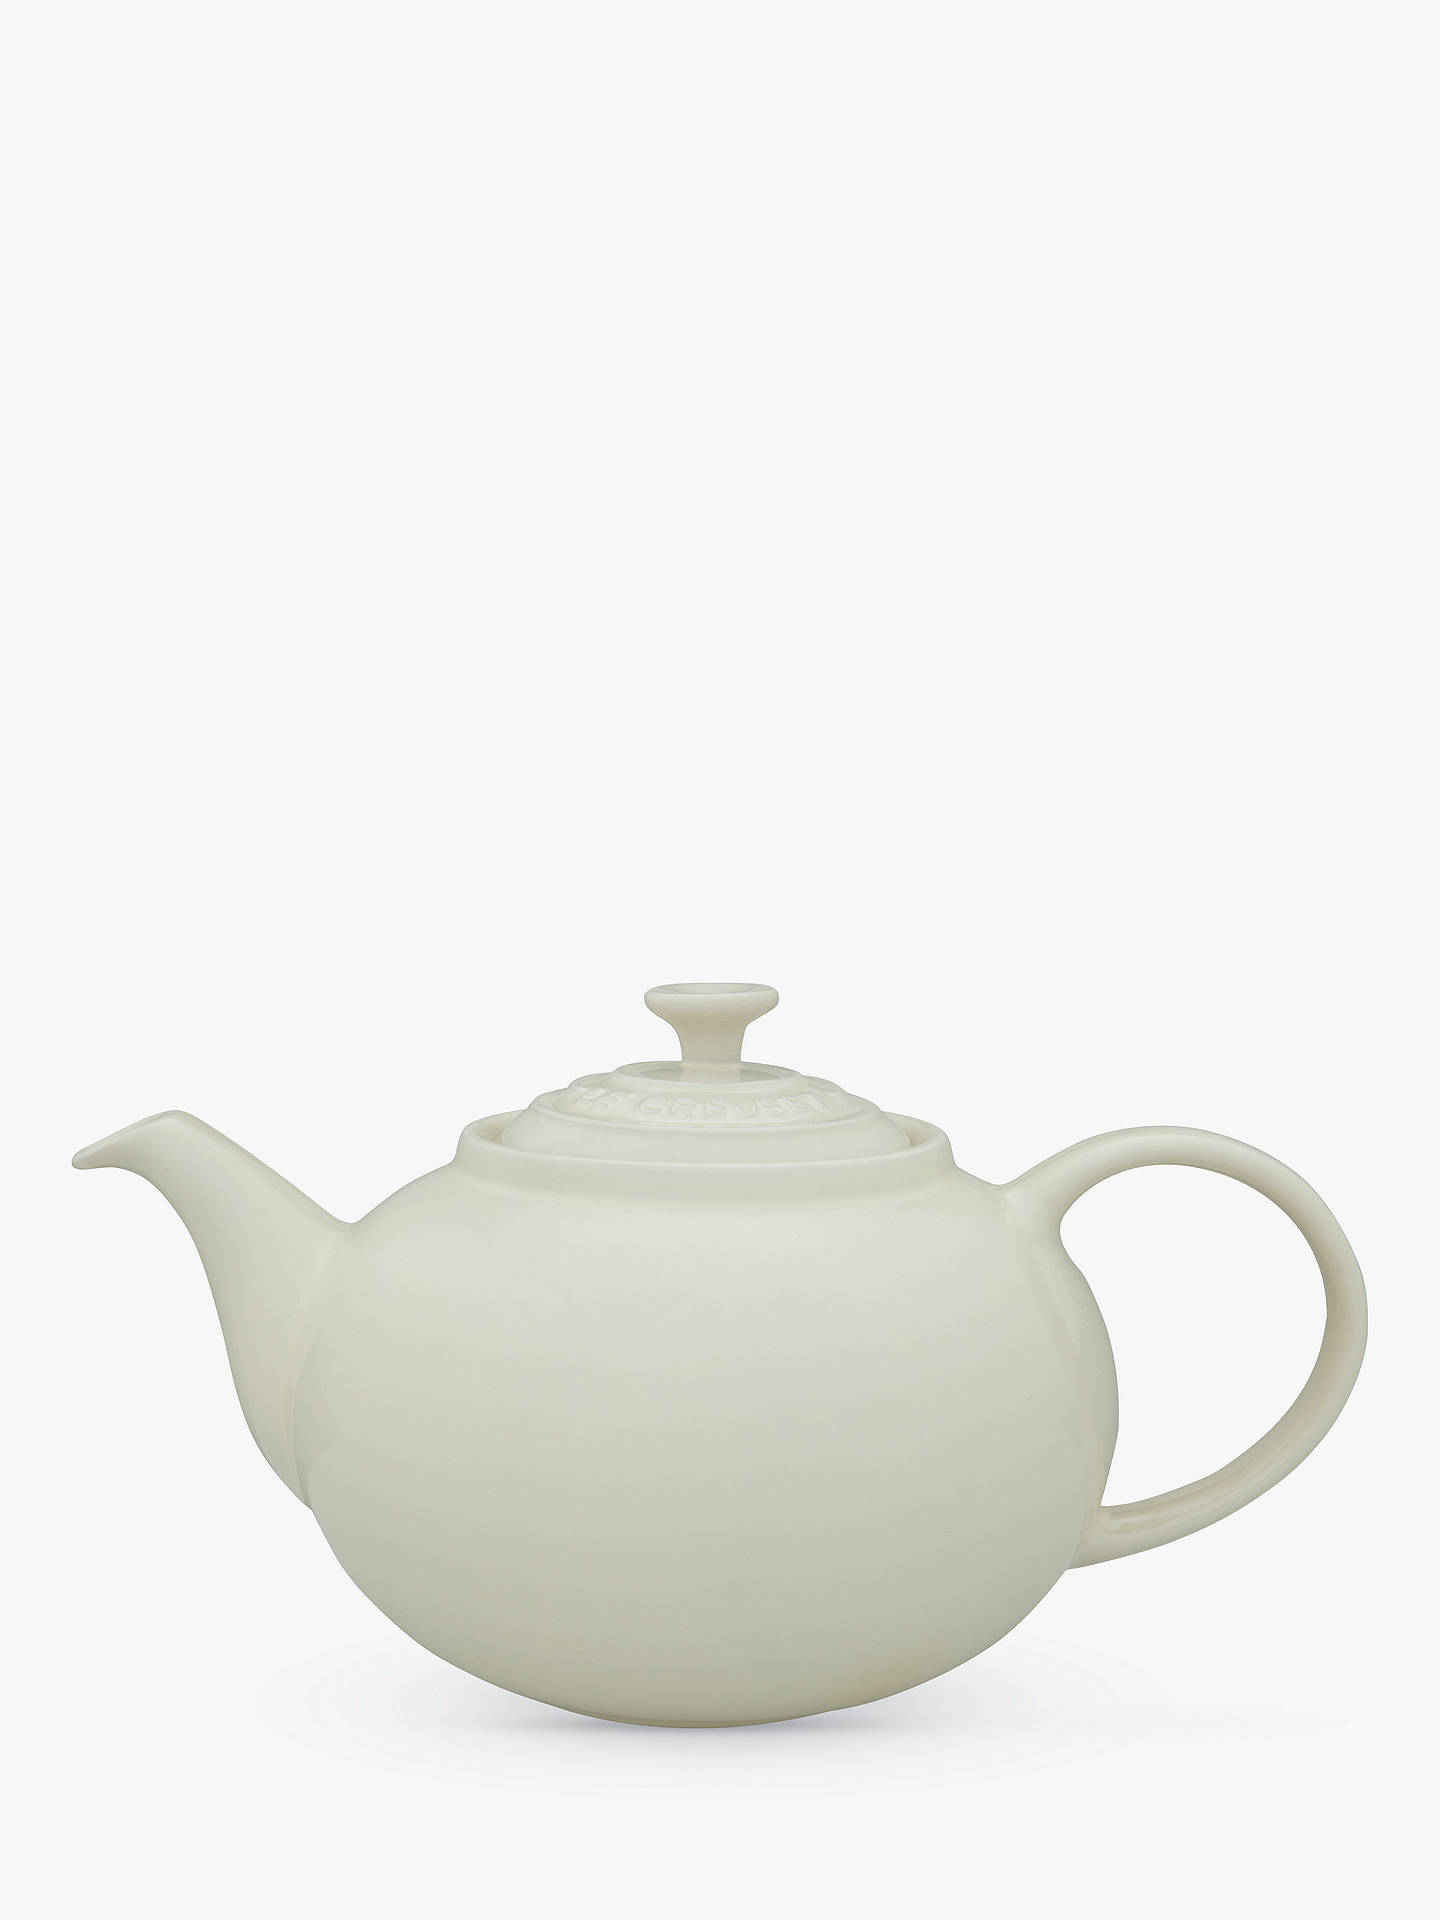 BuyLe Creuset Stoneware Classic 5 Cup Teapot, 1.3L, Almond Online at johnlewis.com